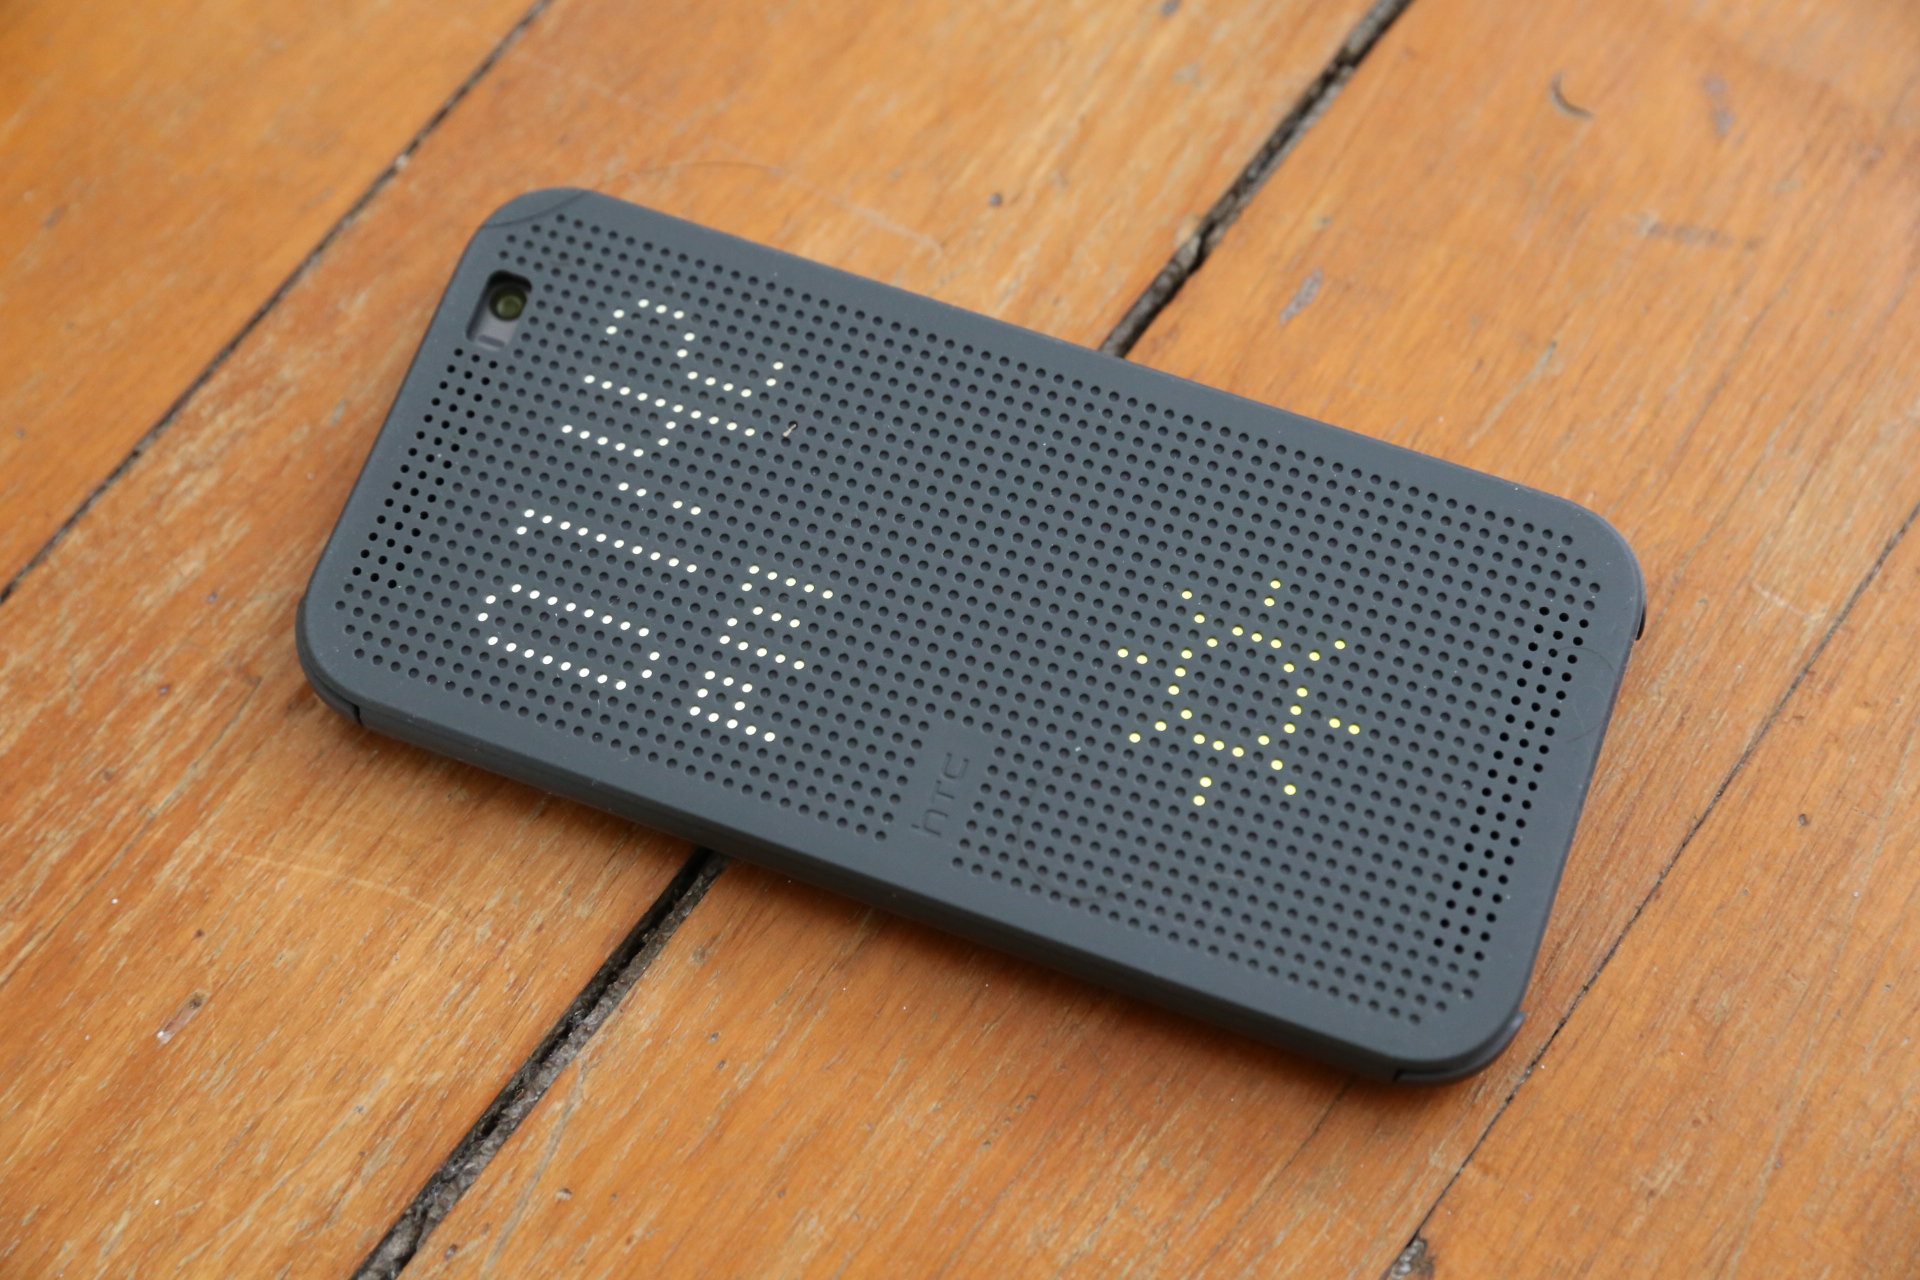 HTC-One-M8-Case-On